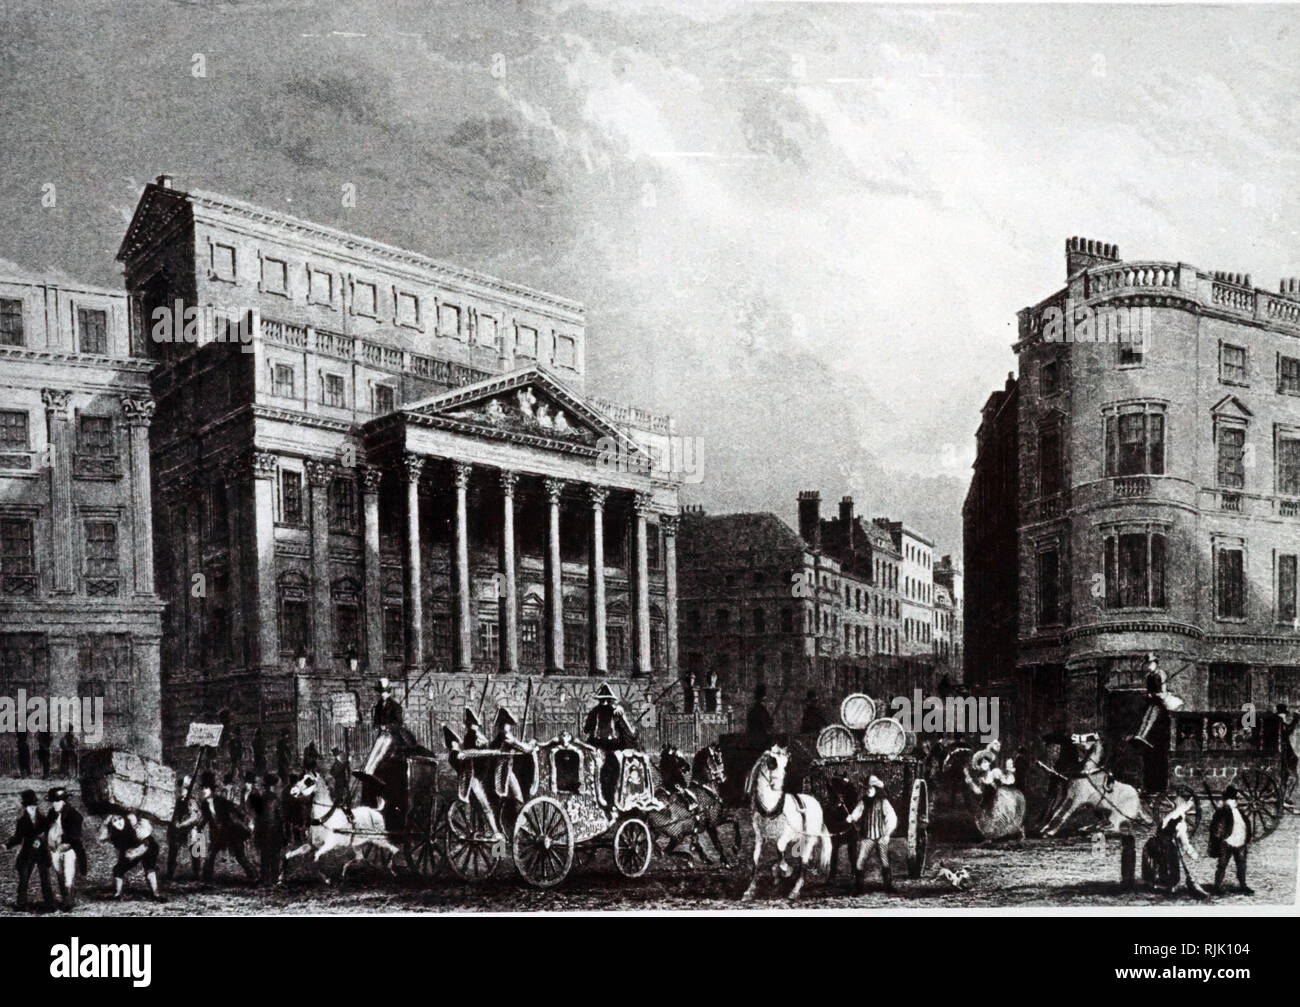 An engraving depicting the exterior of Mansion House, London, the official residence of the Lord Mayor of London. Dated 19th century - Stock Image